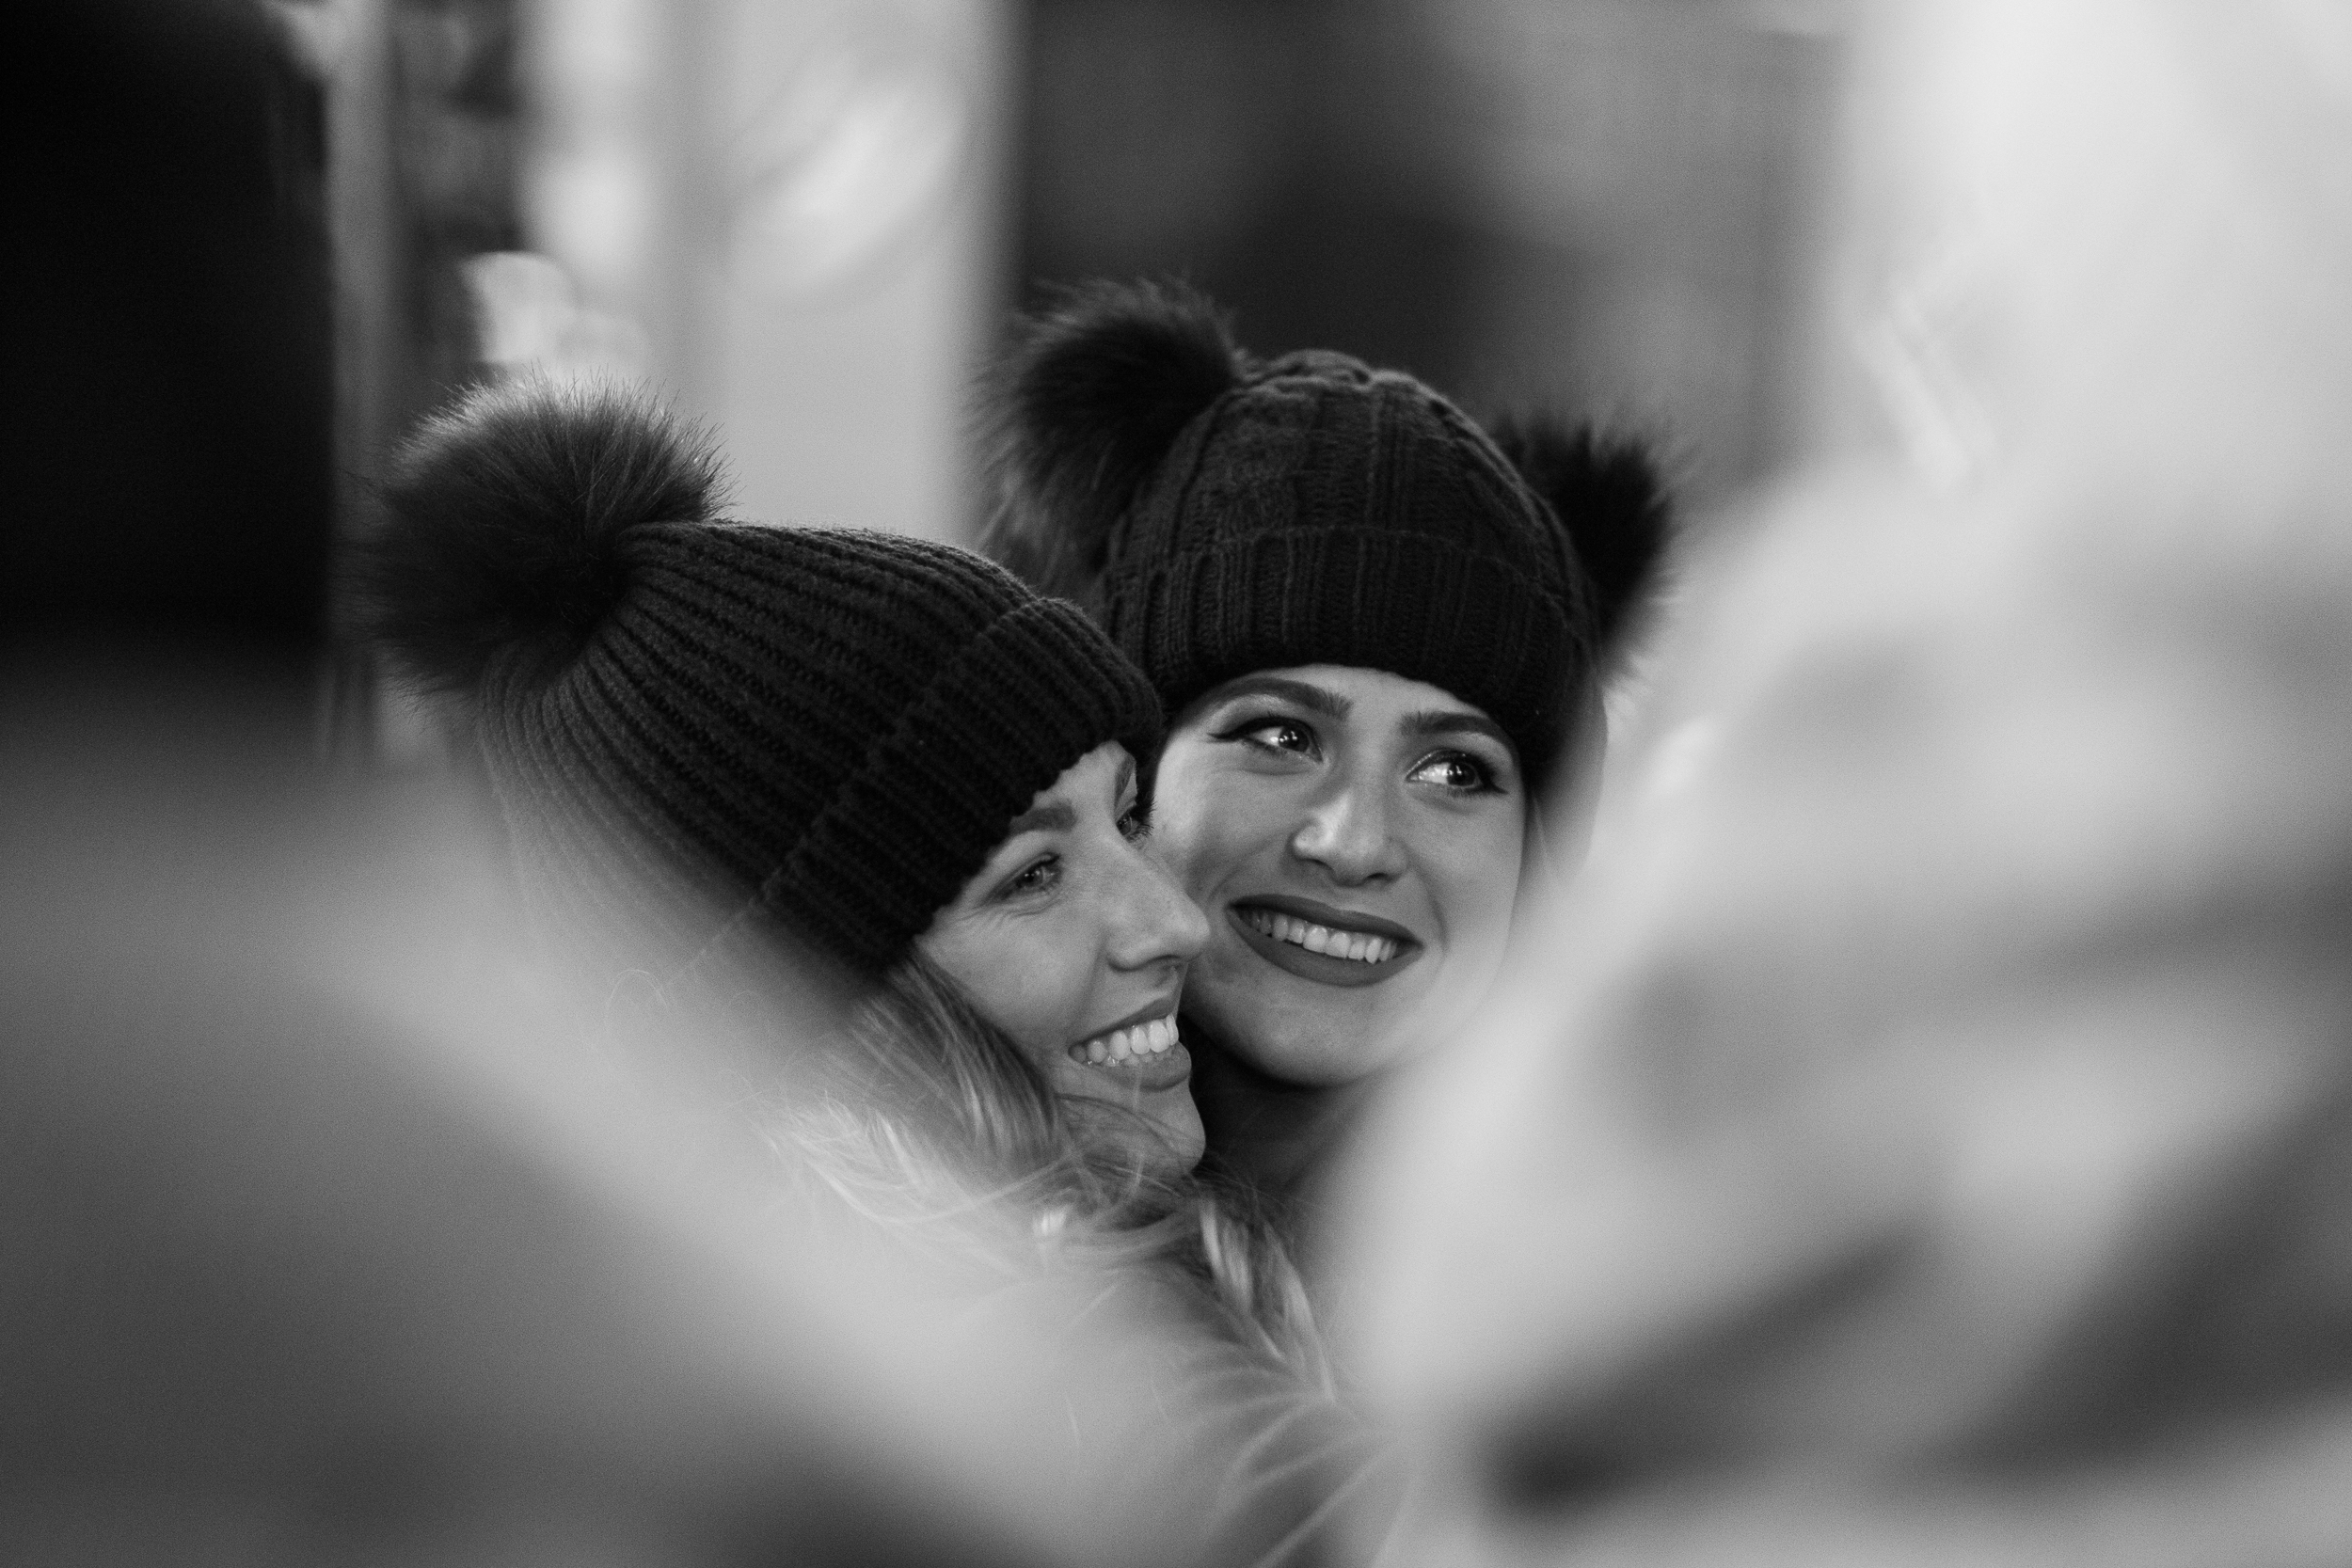 """BFFs. Two women pose for a photograph in Times Square. I """"plucked them out of a crowd"""" by using a longer focal length and narrow depth of field, thereby blurring the people around them and focusing the attention of the photograph solely on their faces. Leica M10 with 90mm Summicron f/2."""